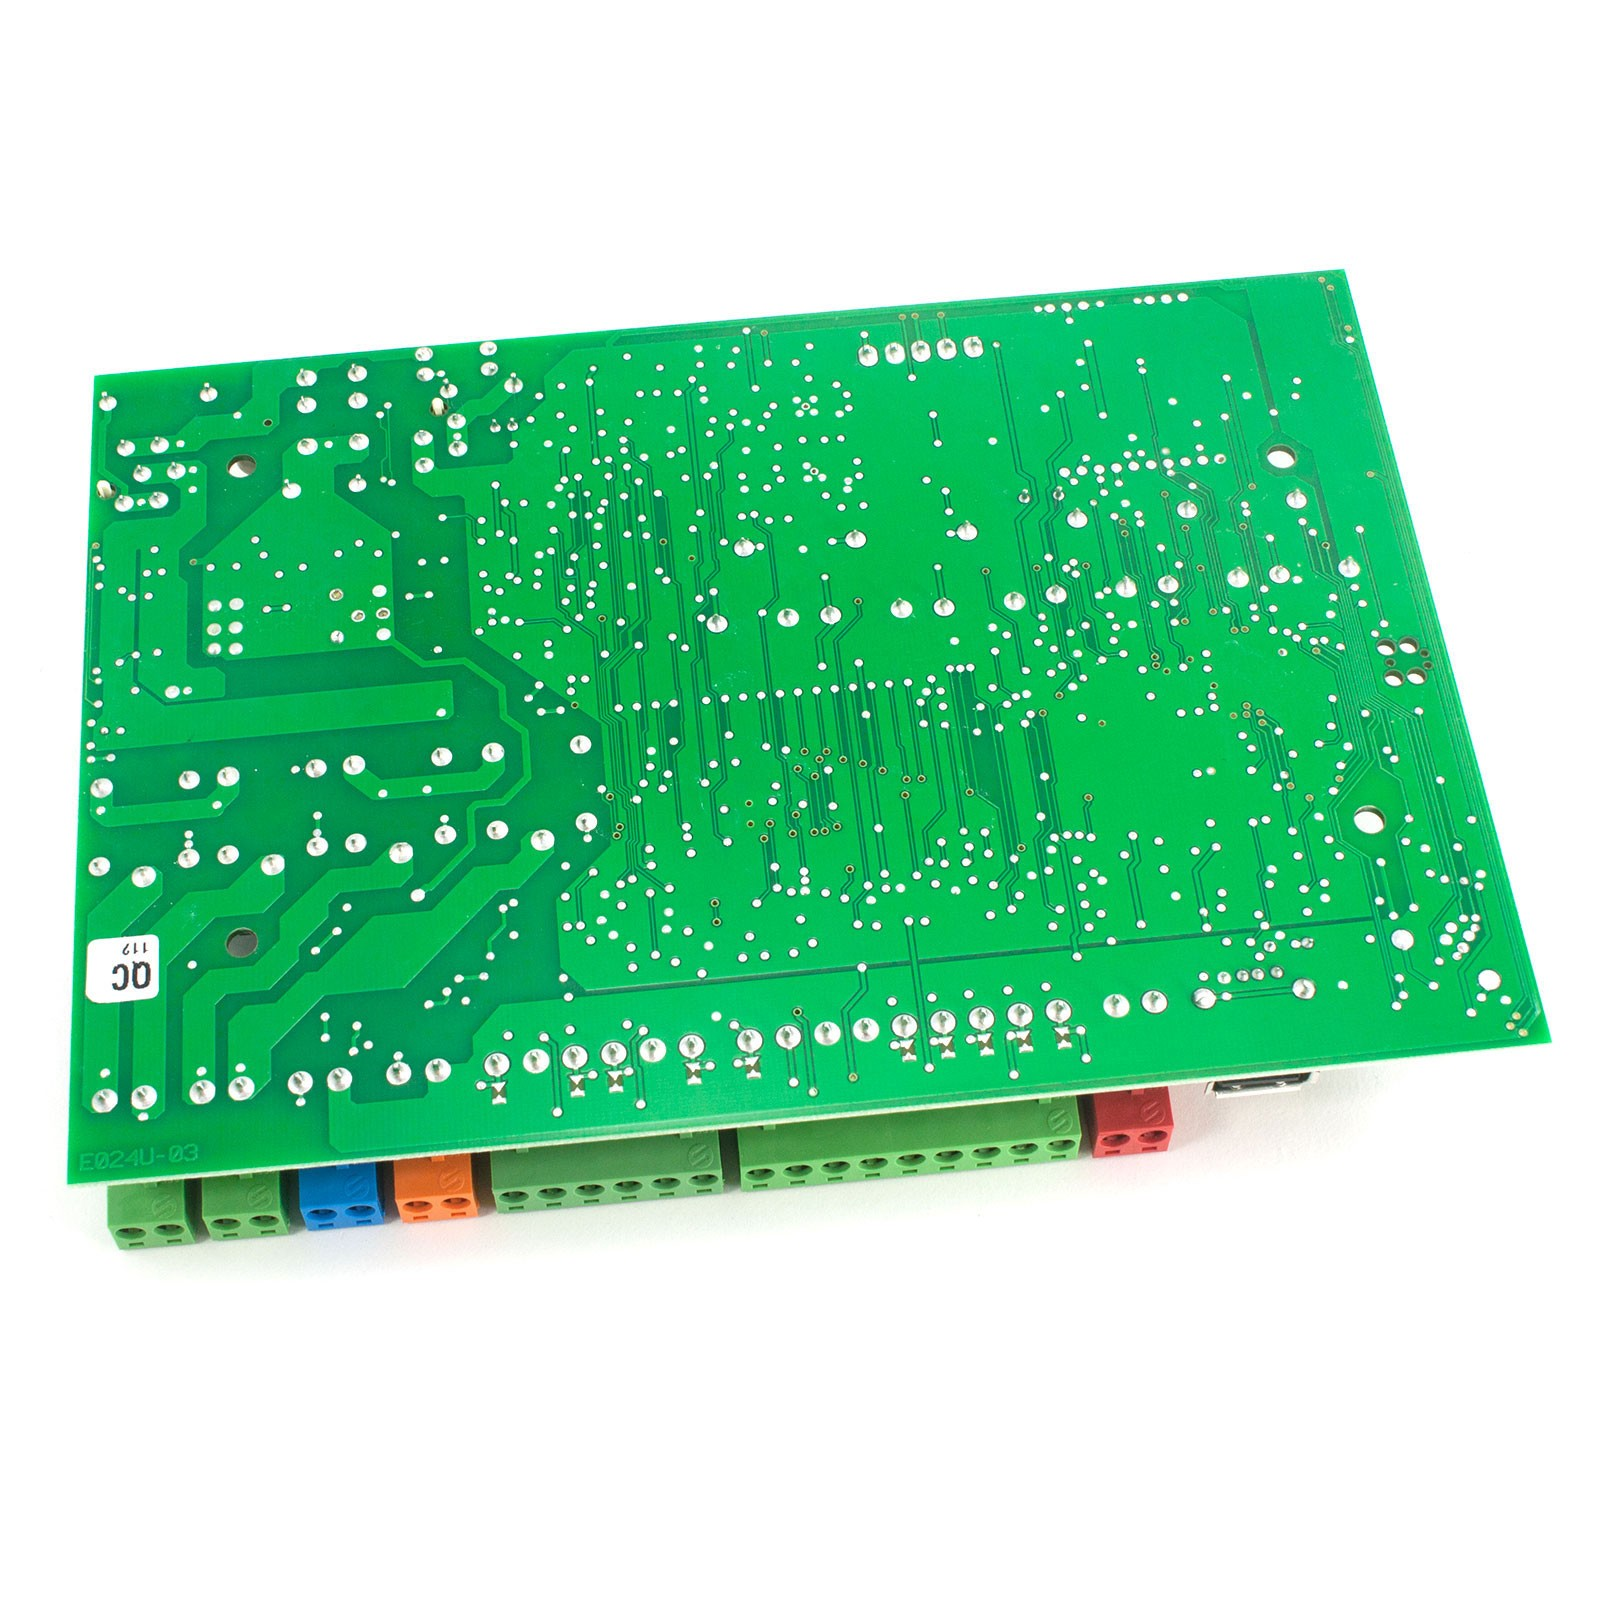 E024u Control Board Faac 202025 Fast Gate Openers Controller Image Opener Circuit Panel Side View Closeup Back Diagram